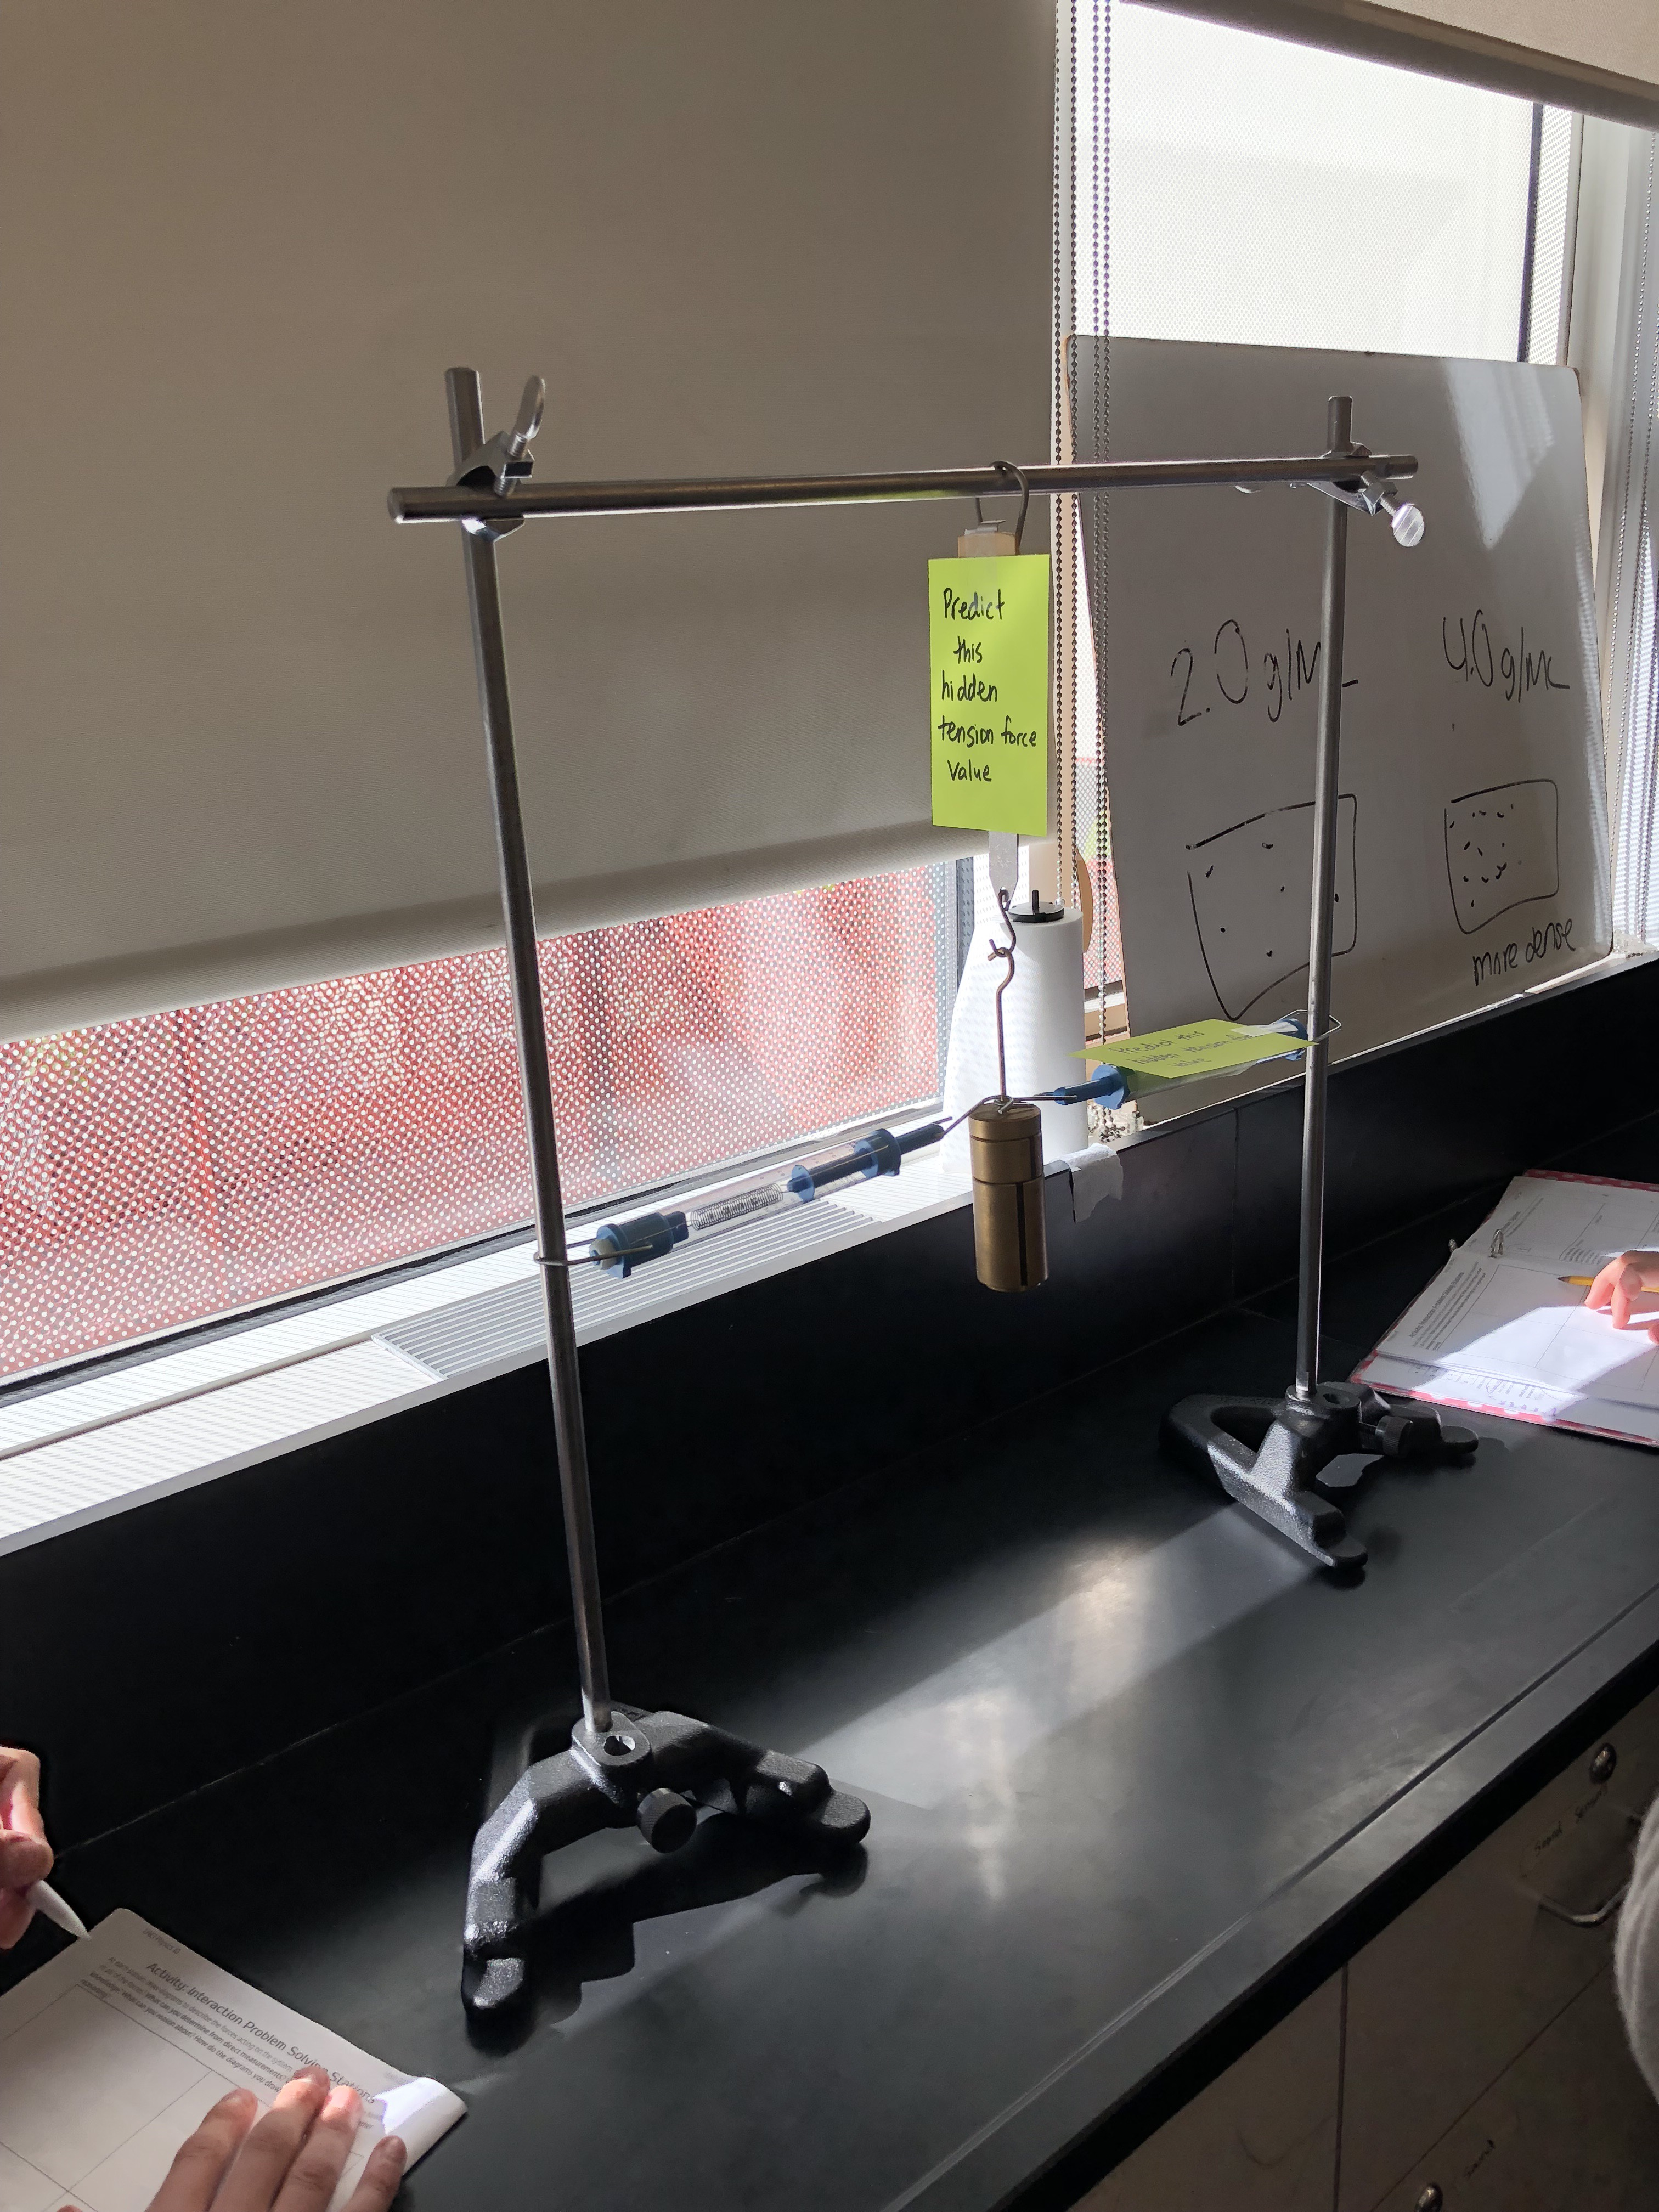 construct a diagram of a mass hanging from a spring scale best  Construct A Diagram Of A Mass Hanging From A Spring Scale What Are The Forces Acting On The Mass #2